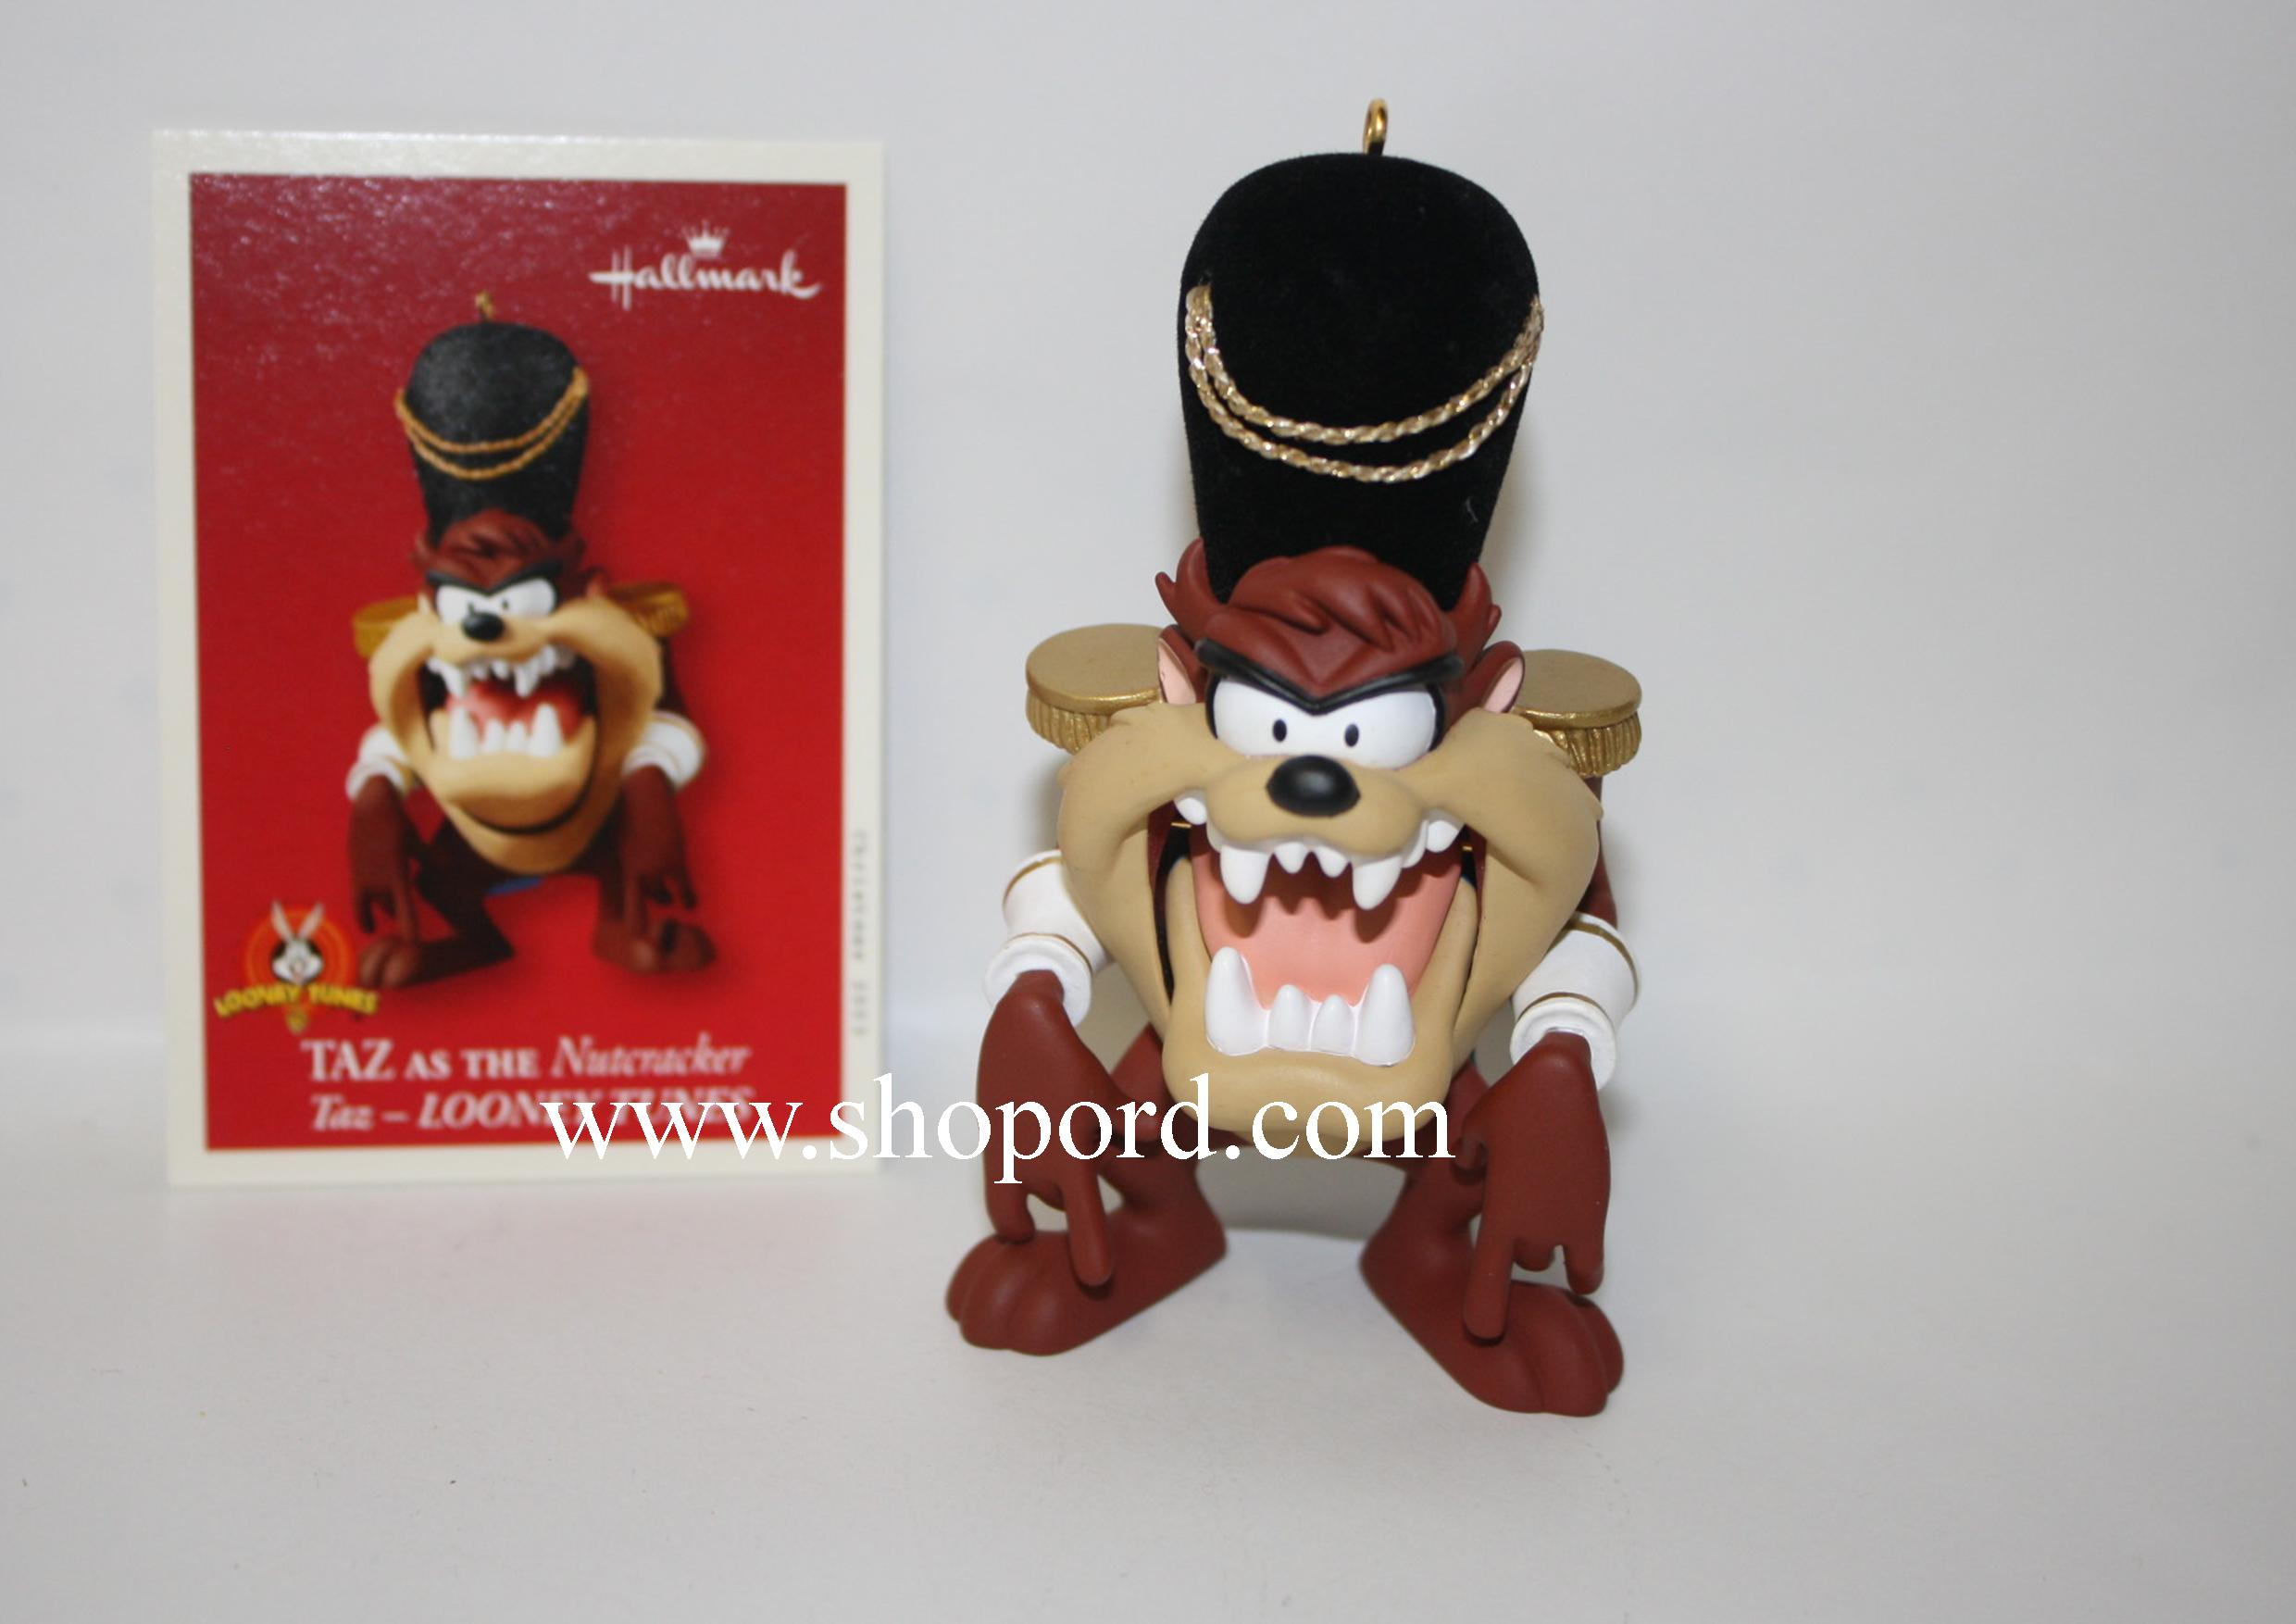 Hallmark 2003 Taz As The Nutcracker Ornament Looney Tunes QXI8269 Box Slightly Bent